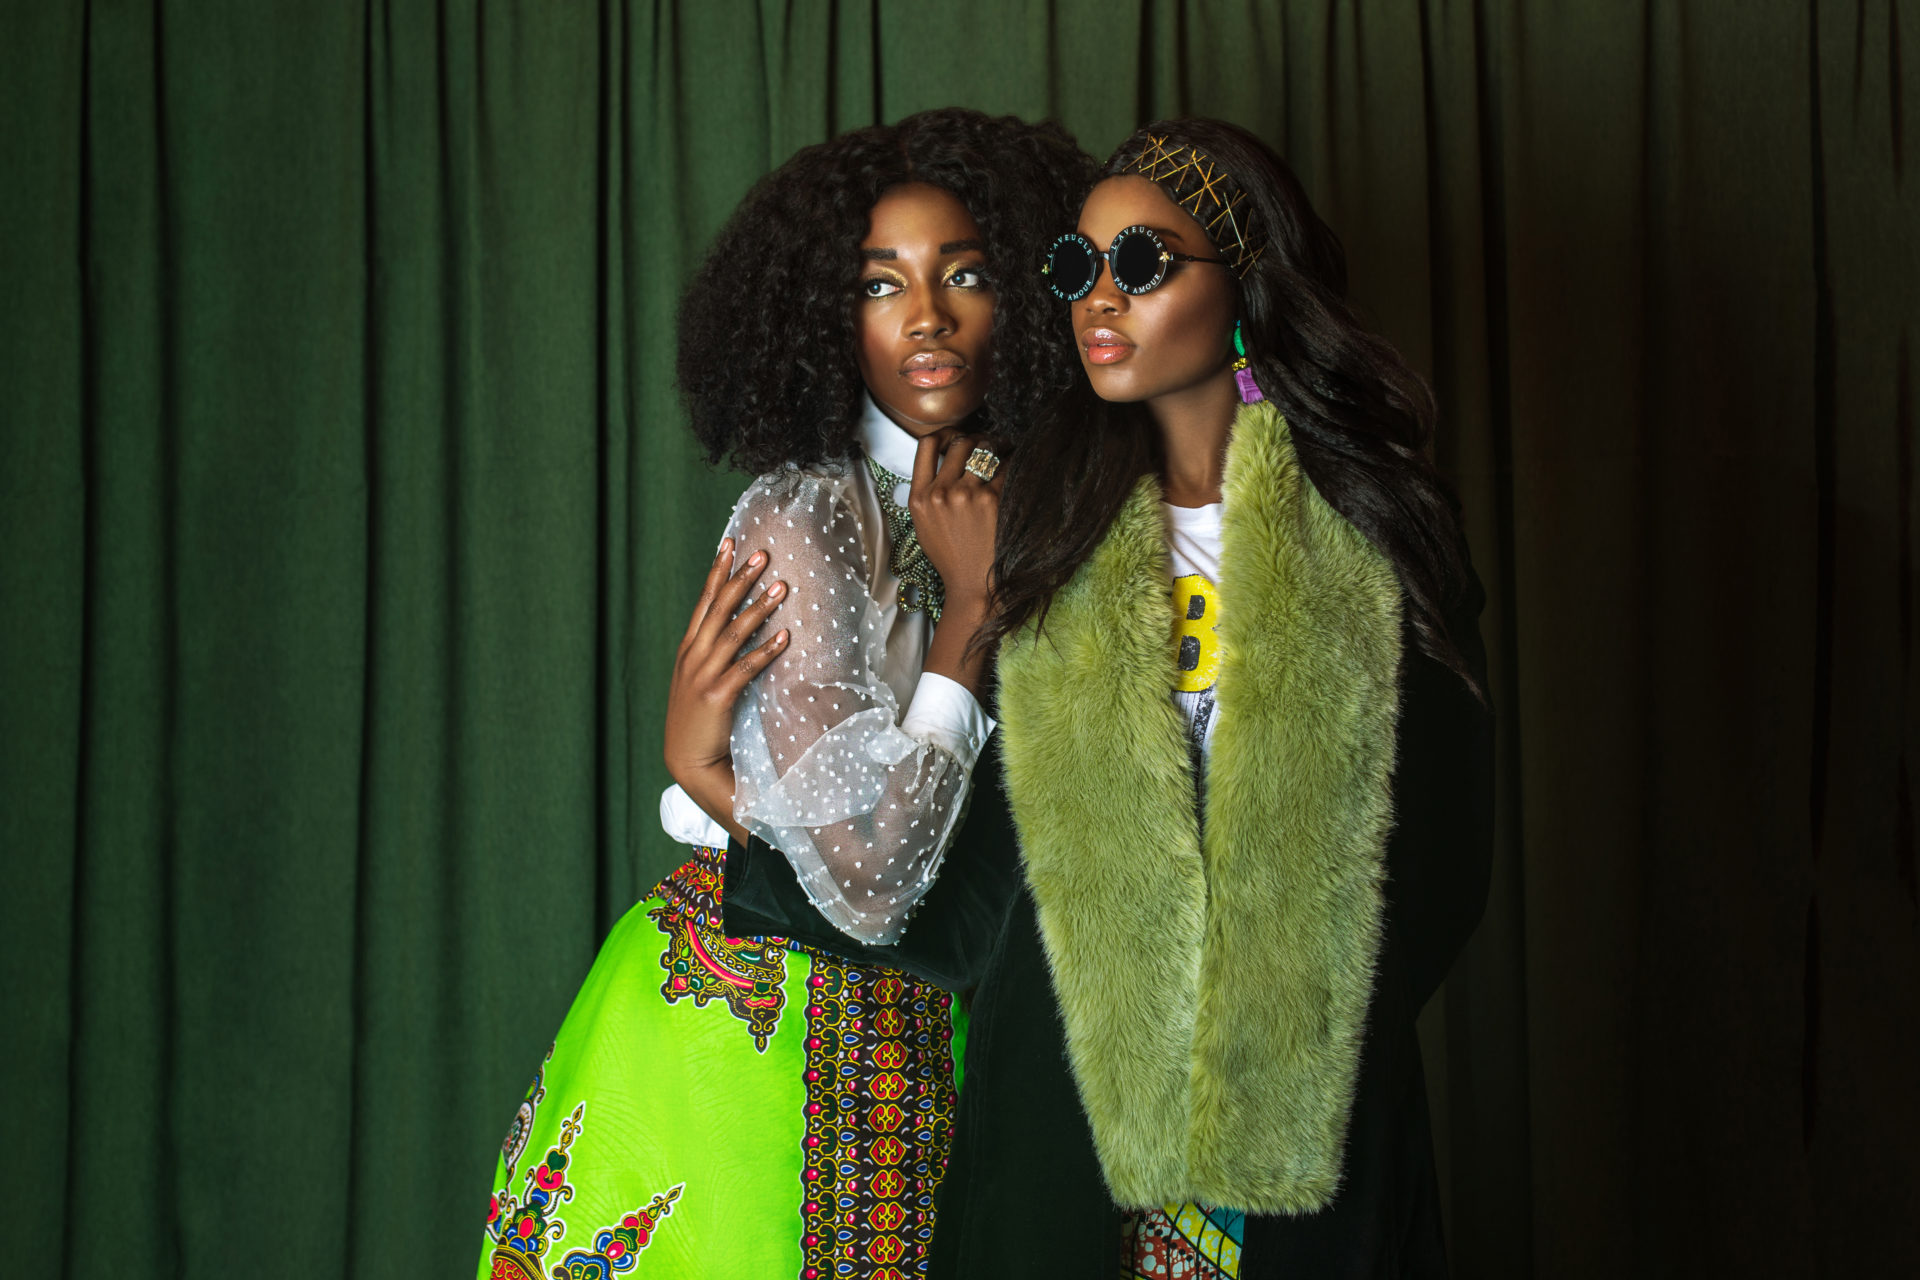 Two Serene Black Ladies in African Designer Clothing